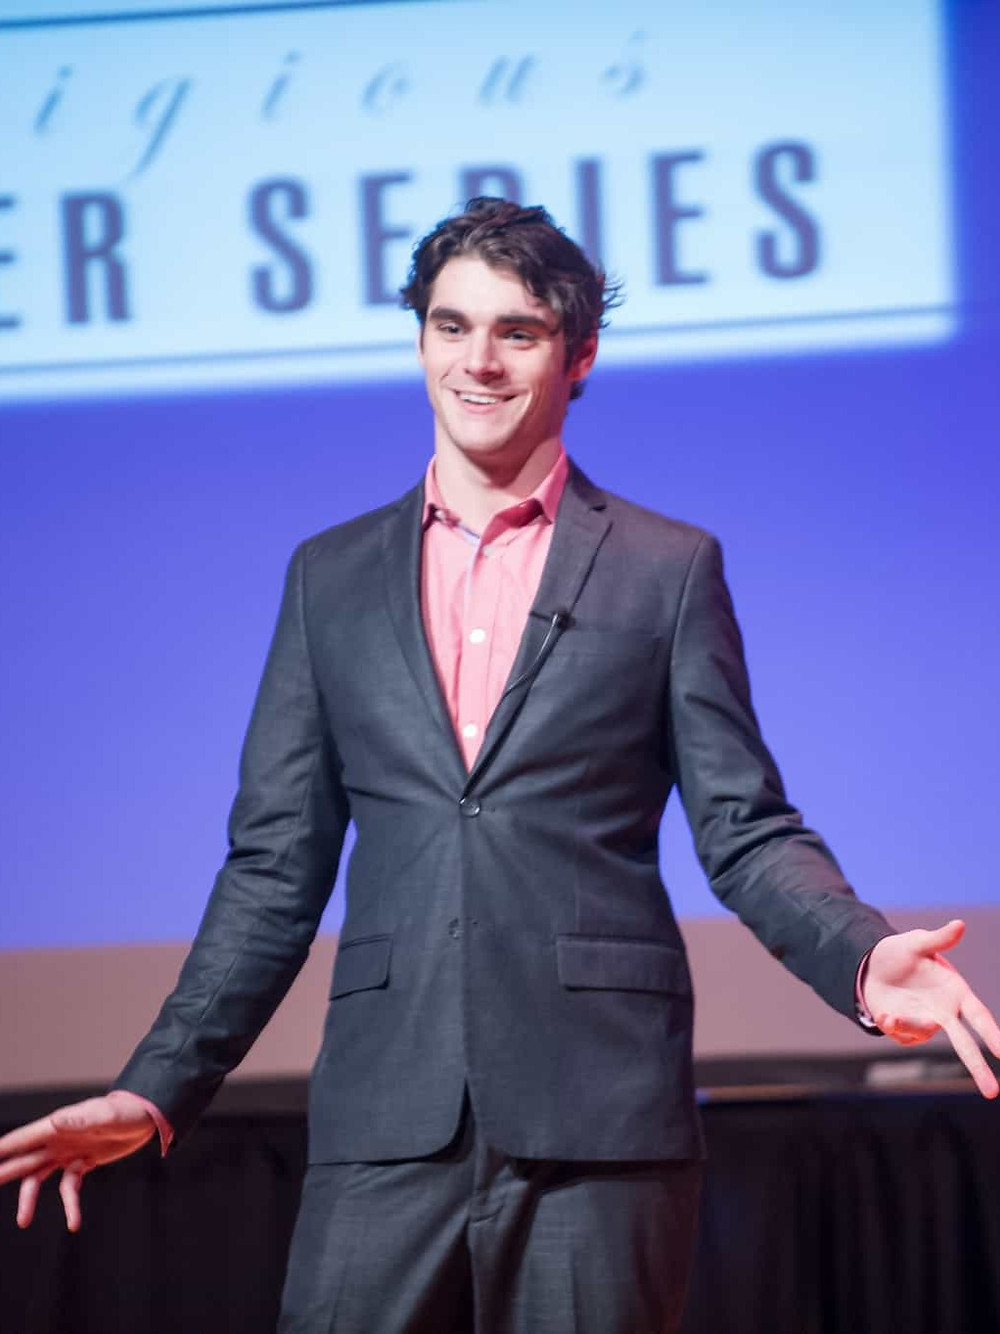 RJ Mitte on stage